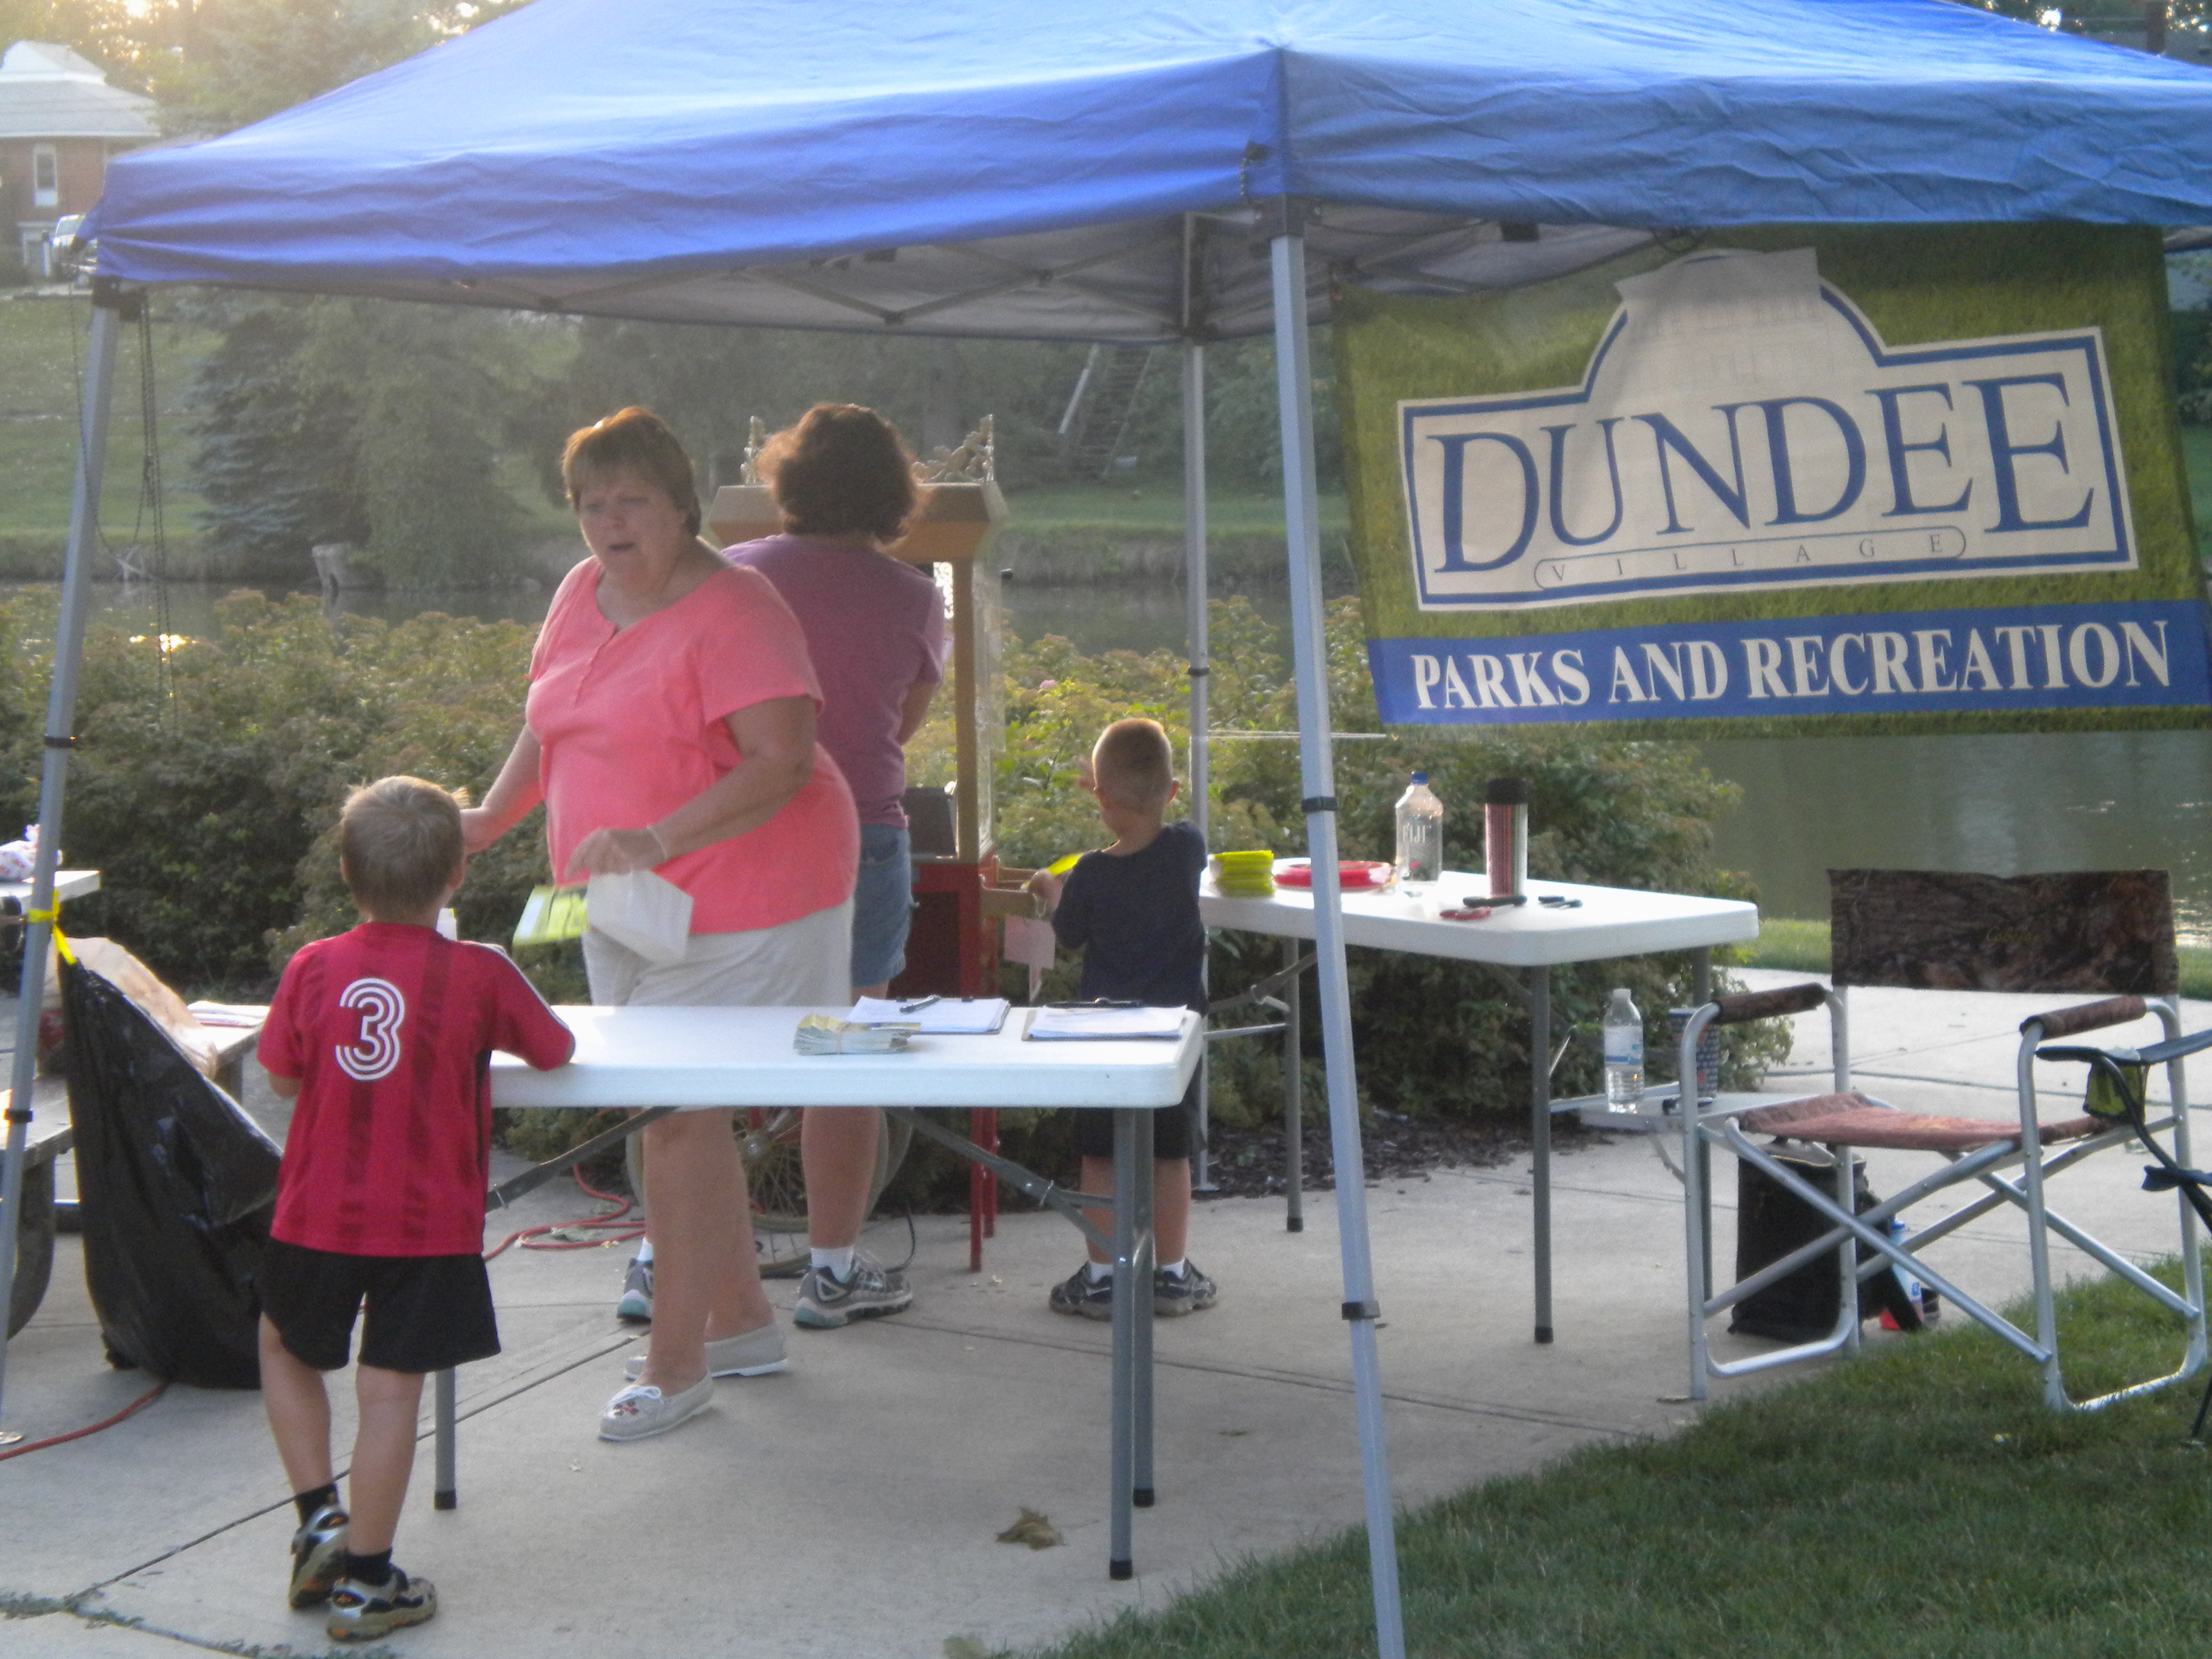 Dundee Parks & Recreation